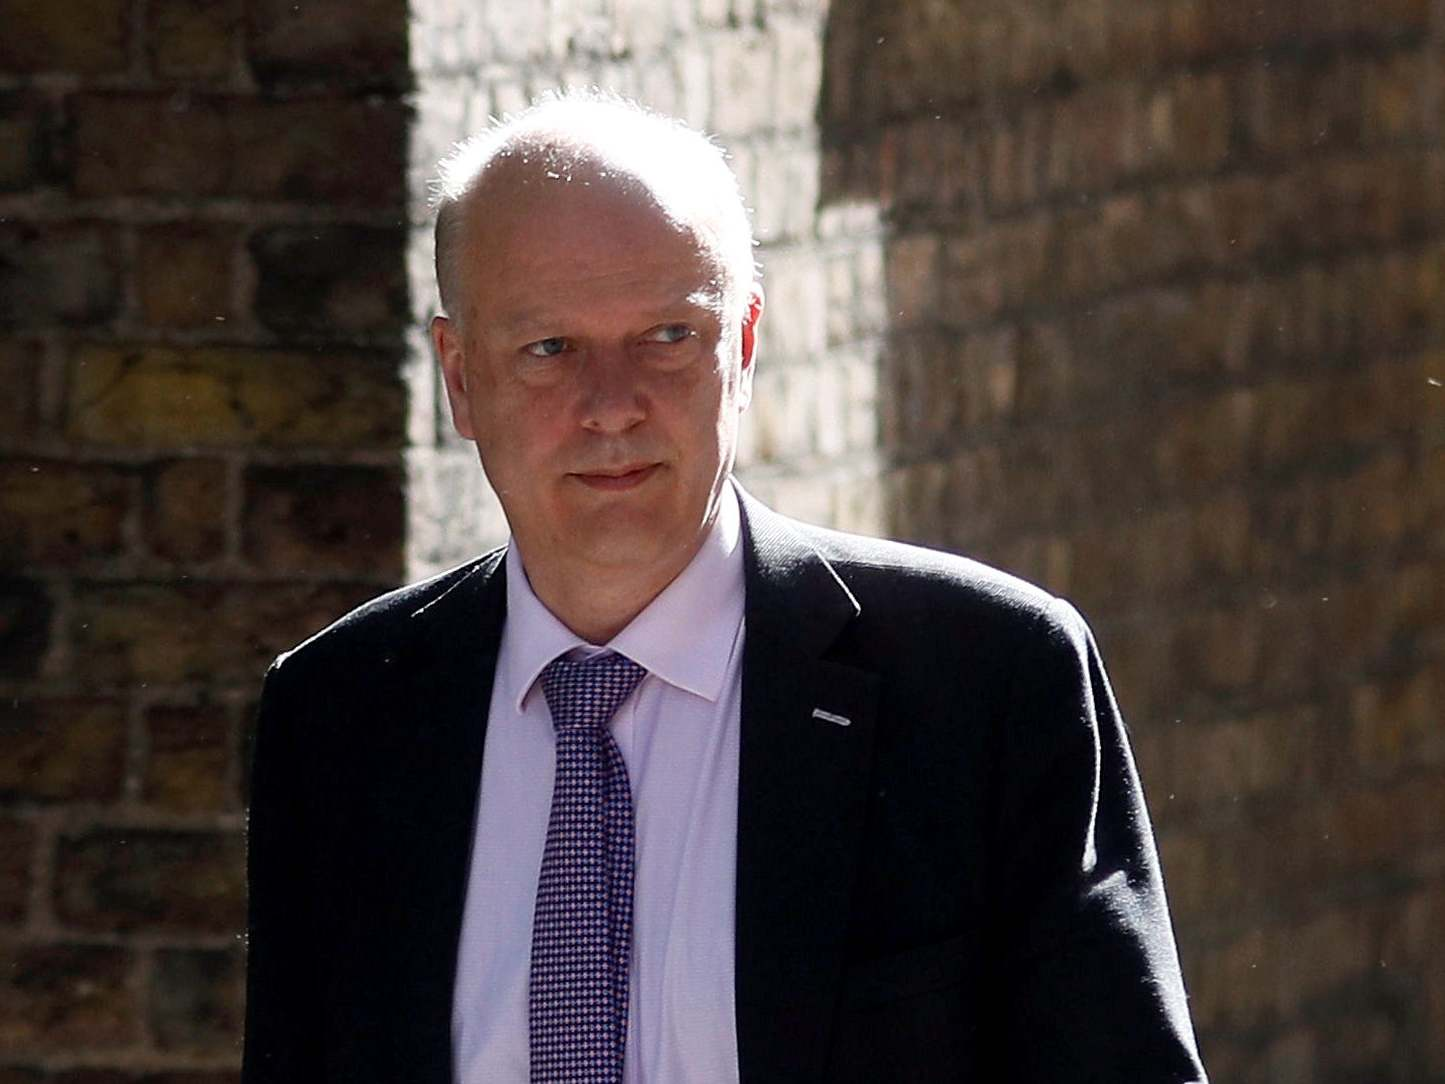 Boris Johnson faces cross-party backlash over plan for Chris Grayling to run intelligence watchdog